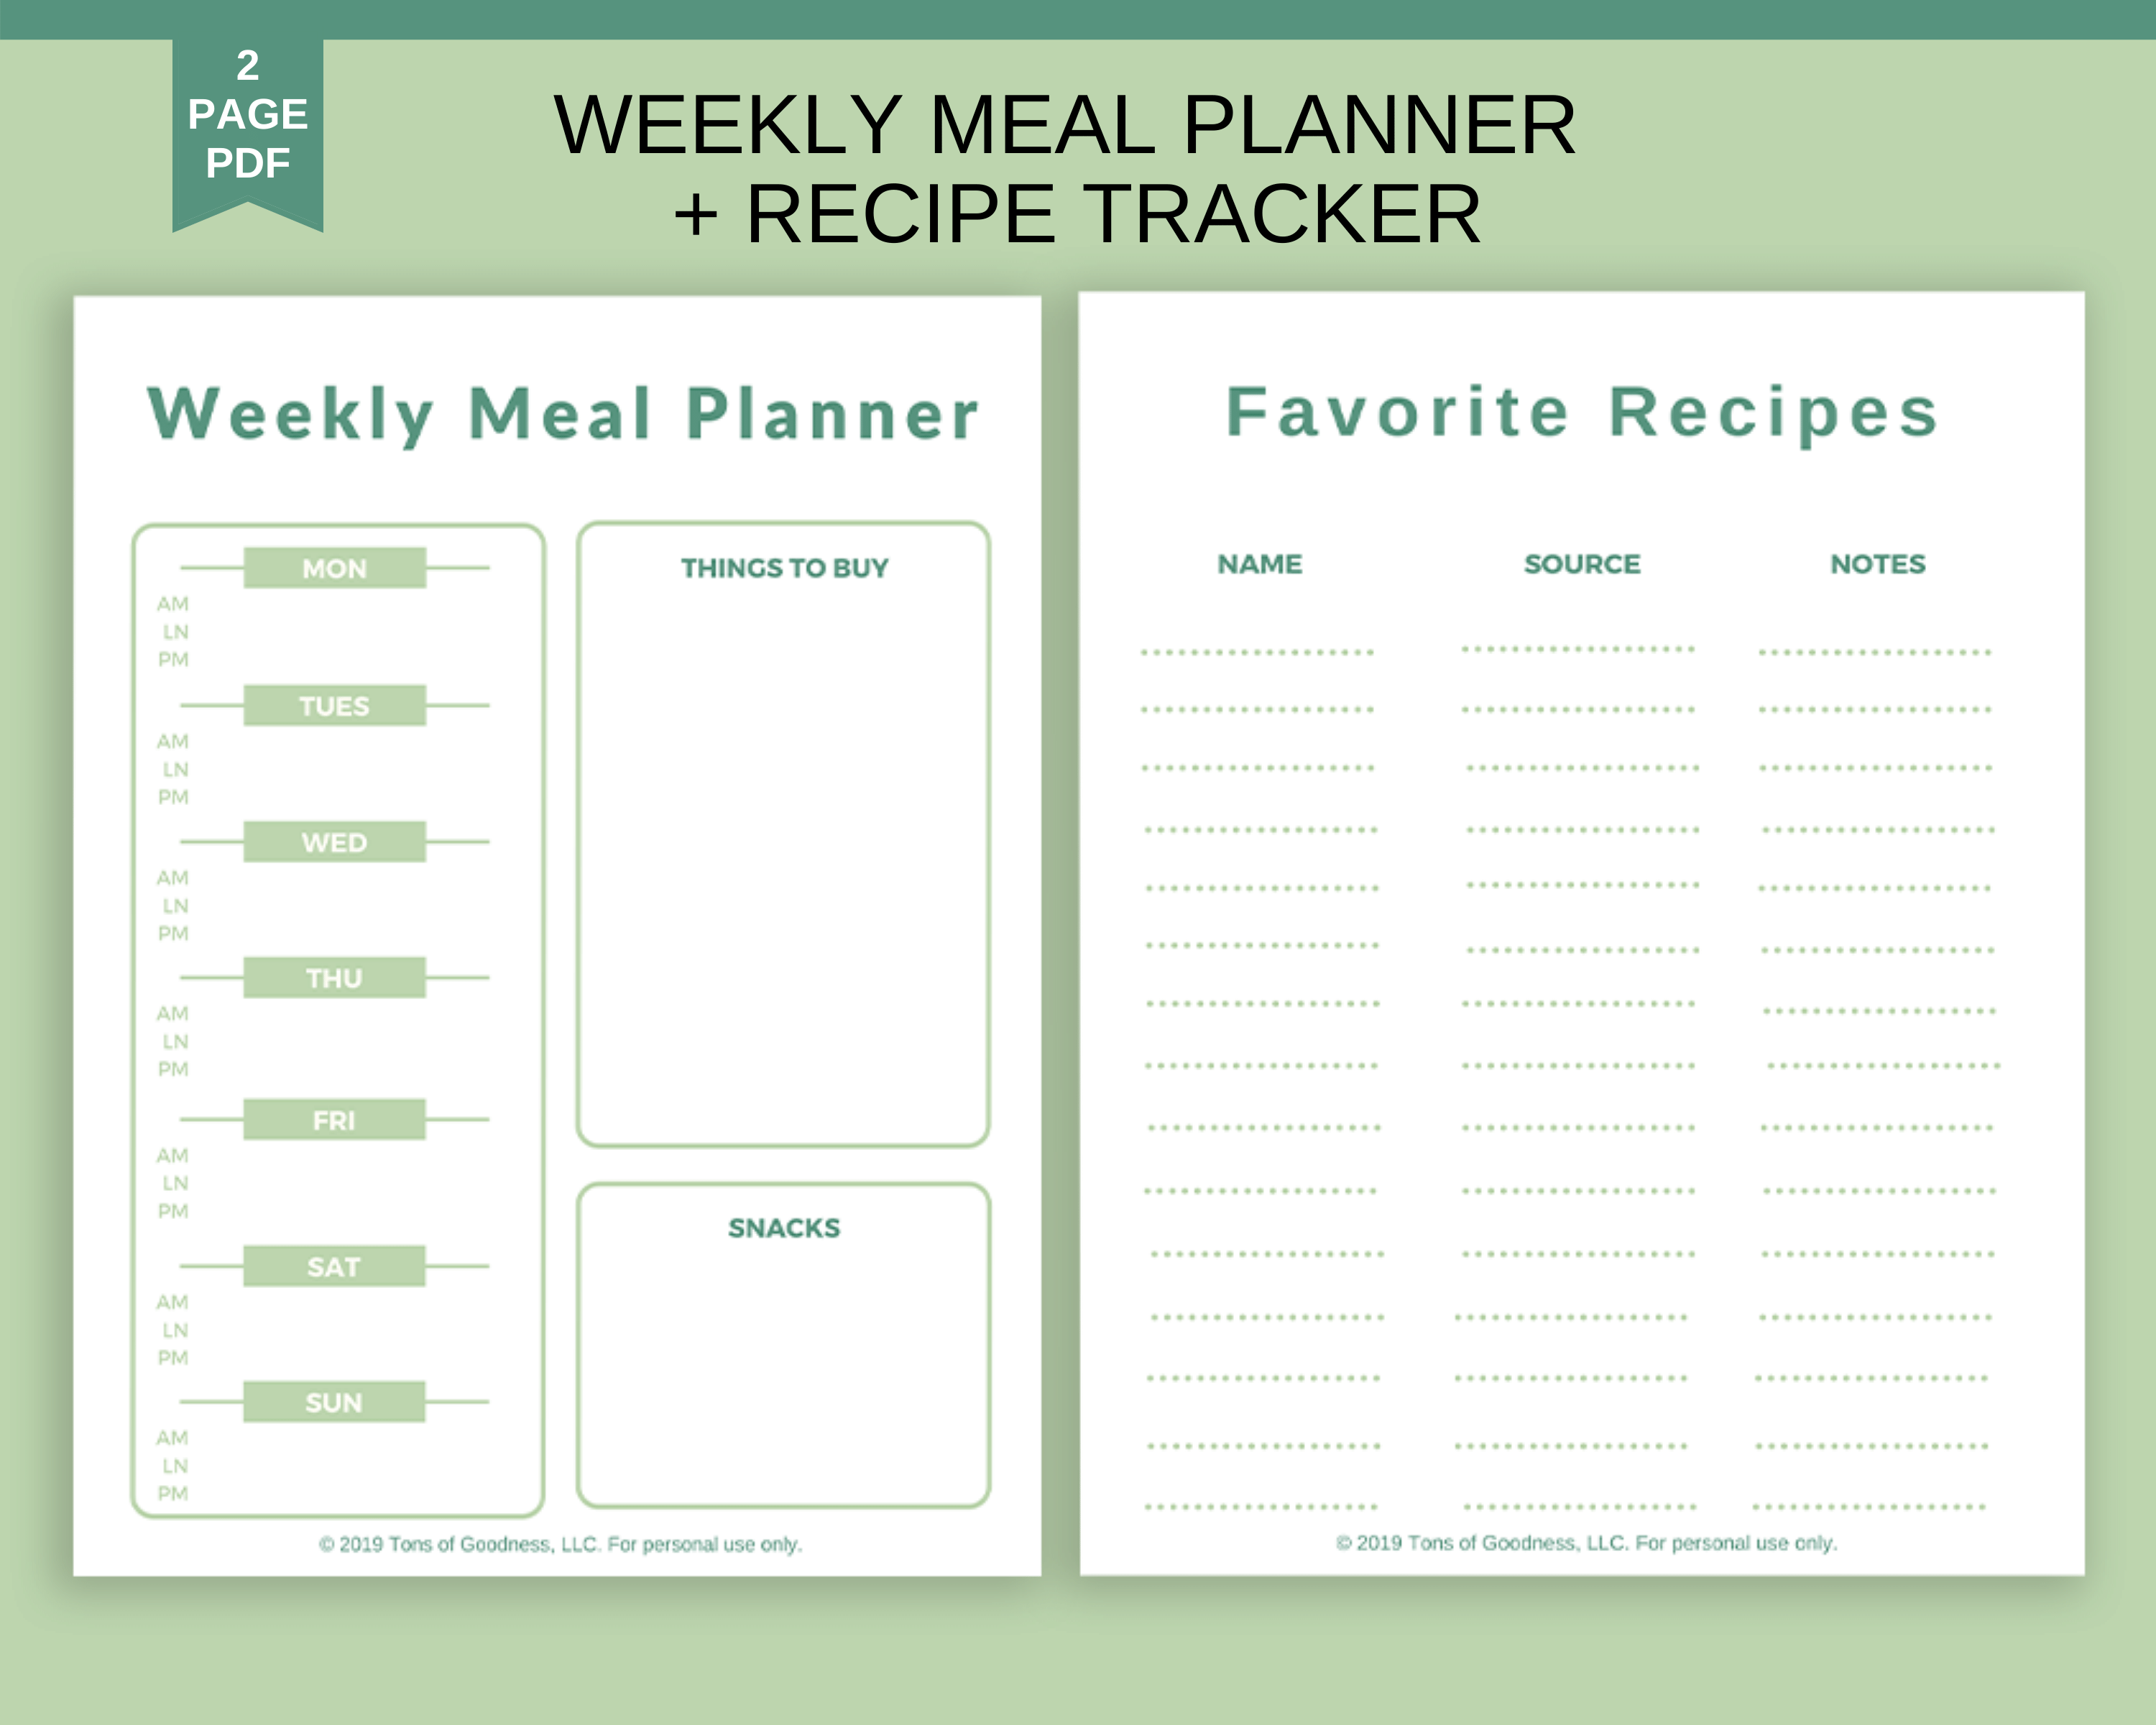 Weekly Meal PLanner & Recipe Tracker image